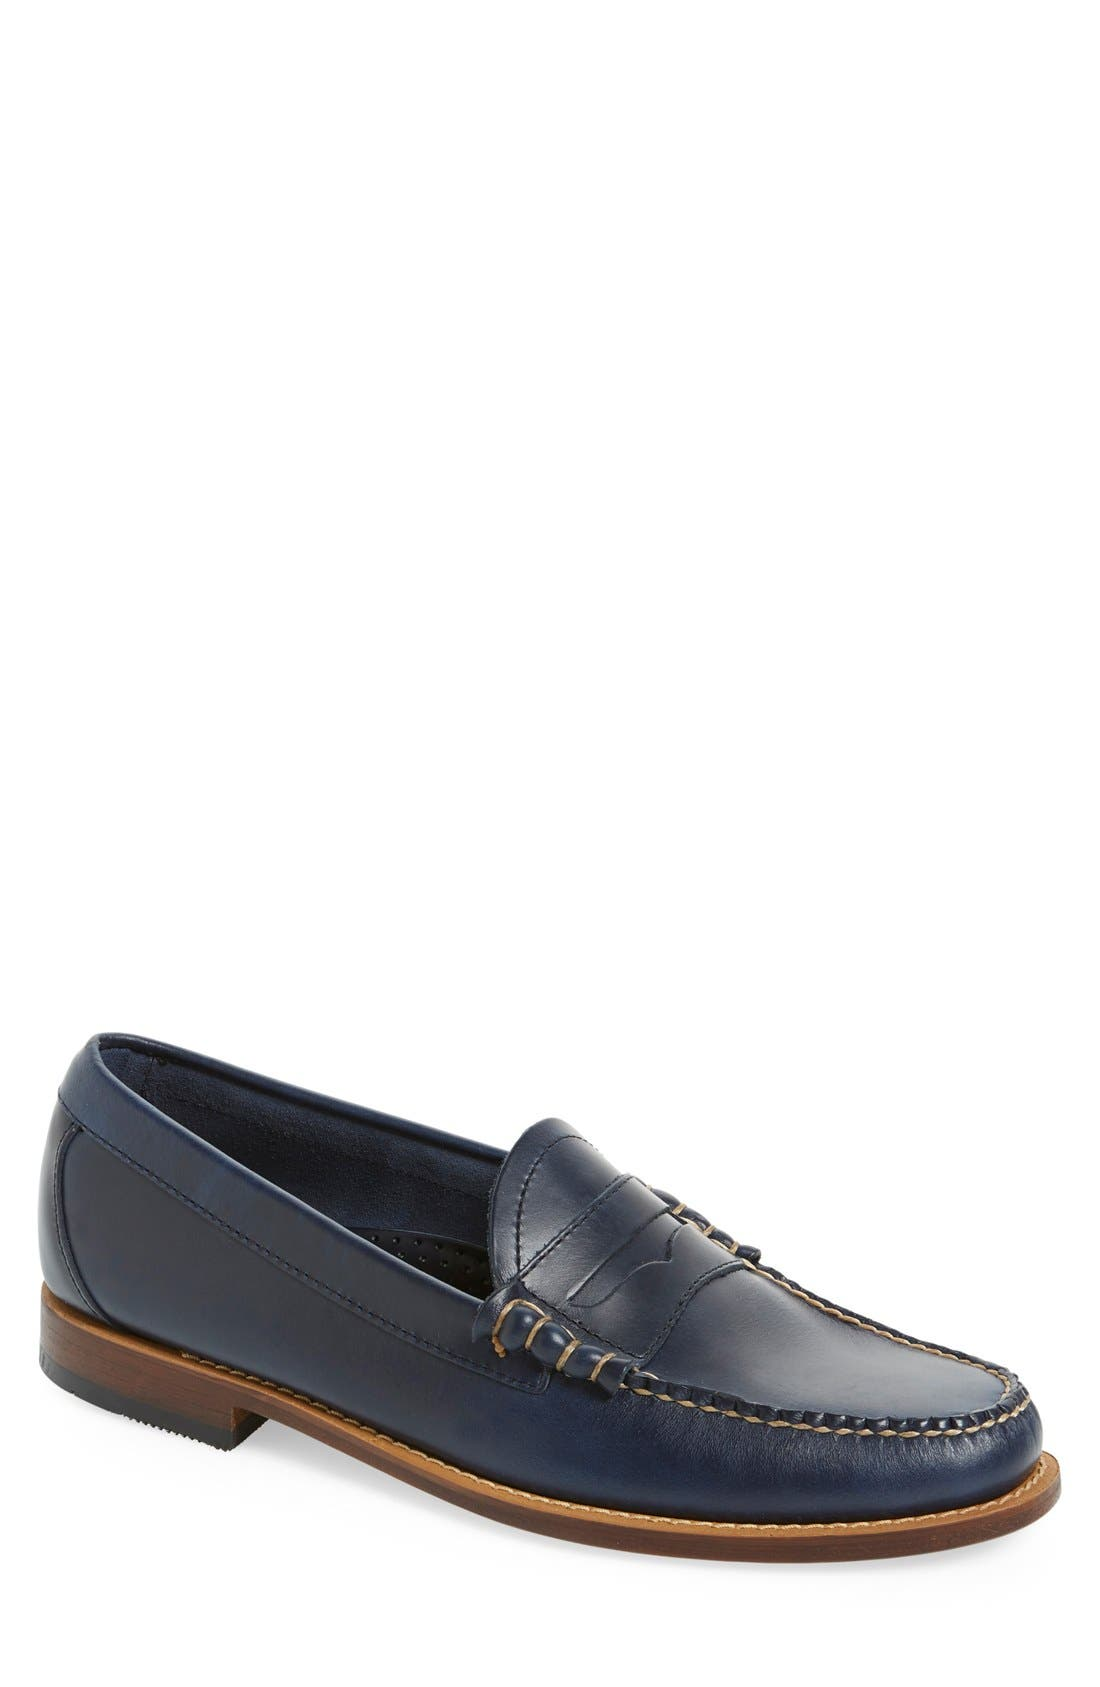 'Larson - Weejuns' Penny Loafer,                             Main thumbnail 1, color,                             BLUE LEATHER